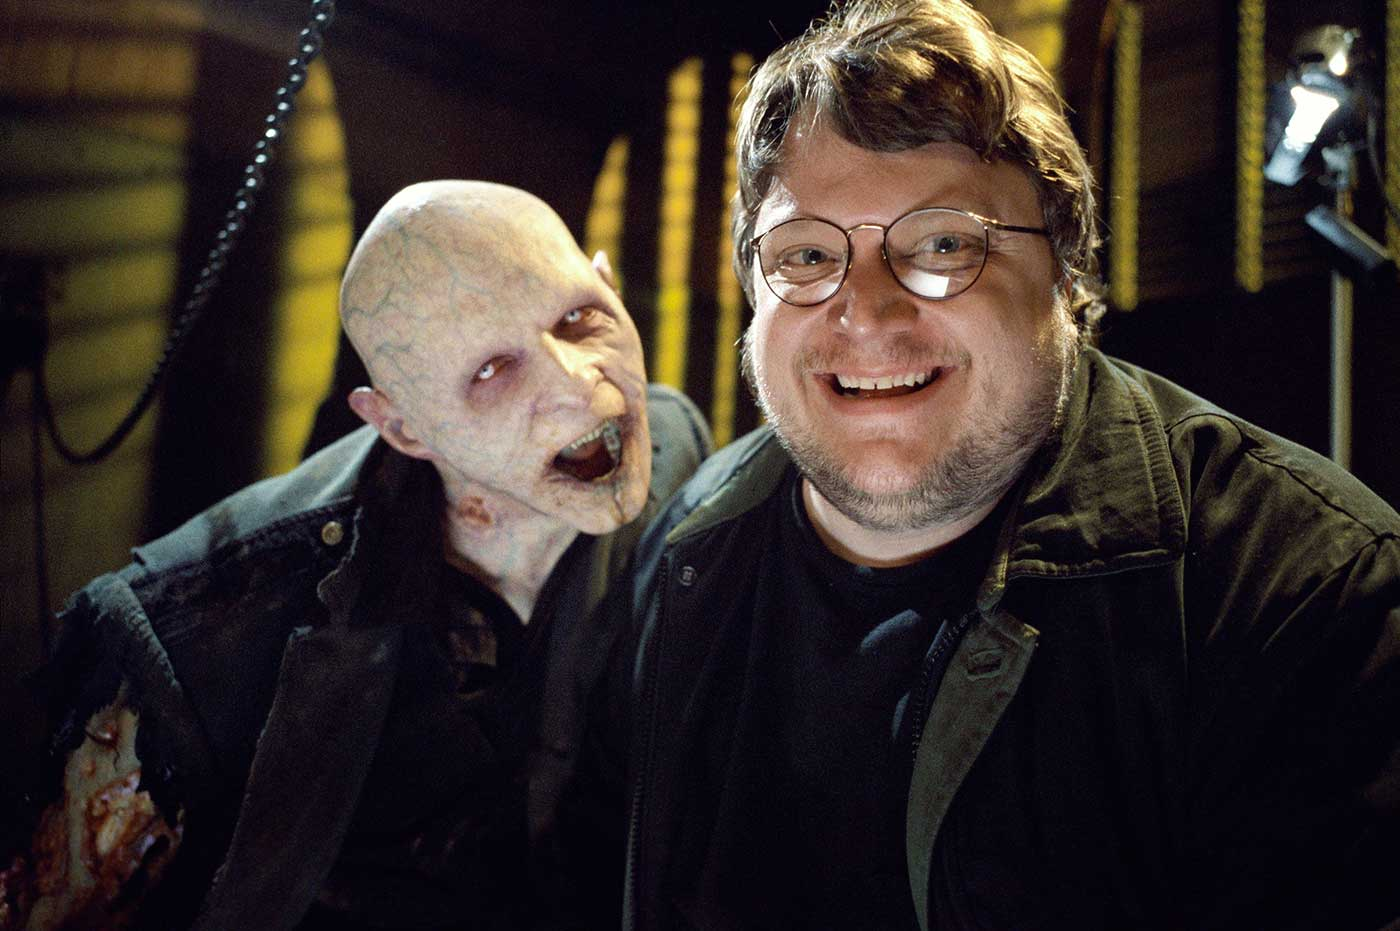 The director feeling right at home behind the scenes with one of the vampiric villains of BLADE II (2002).